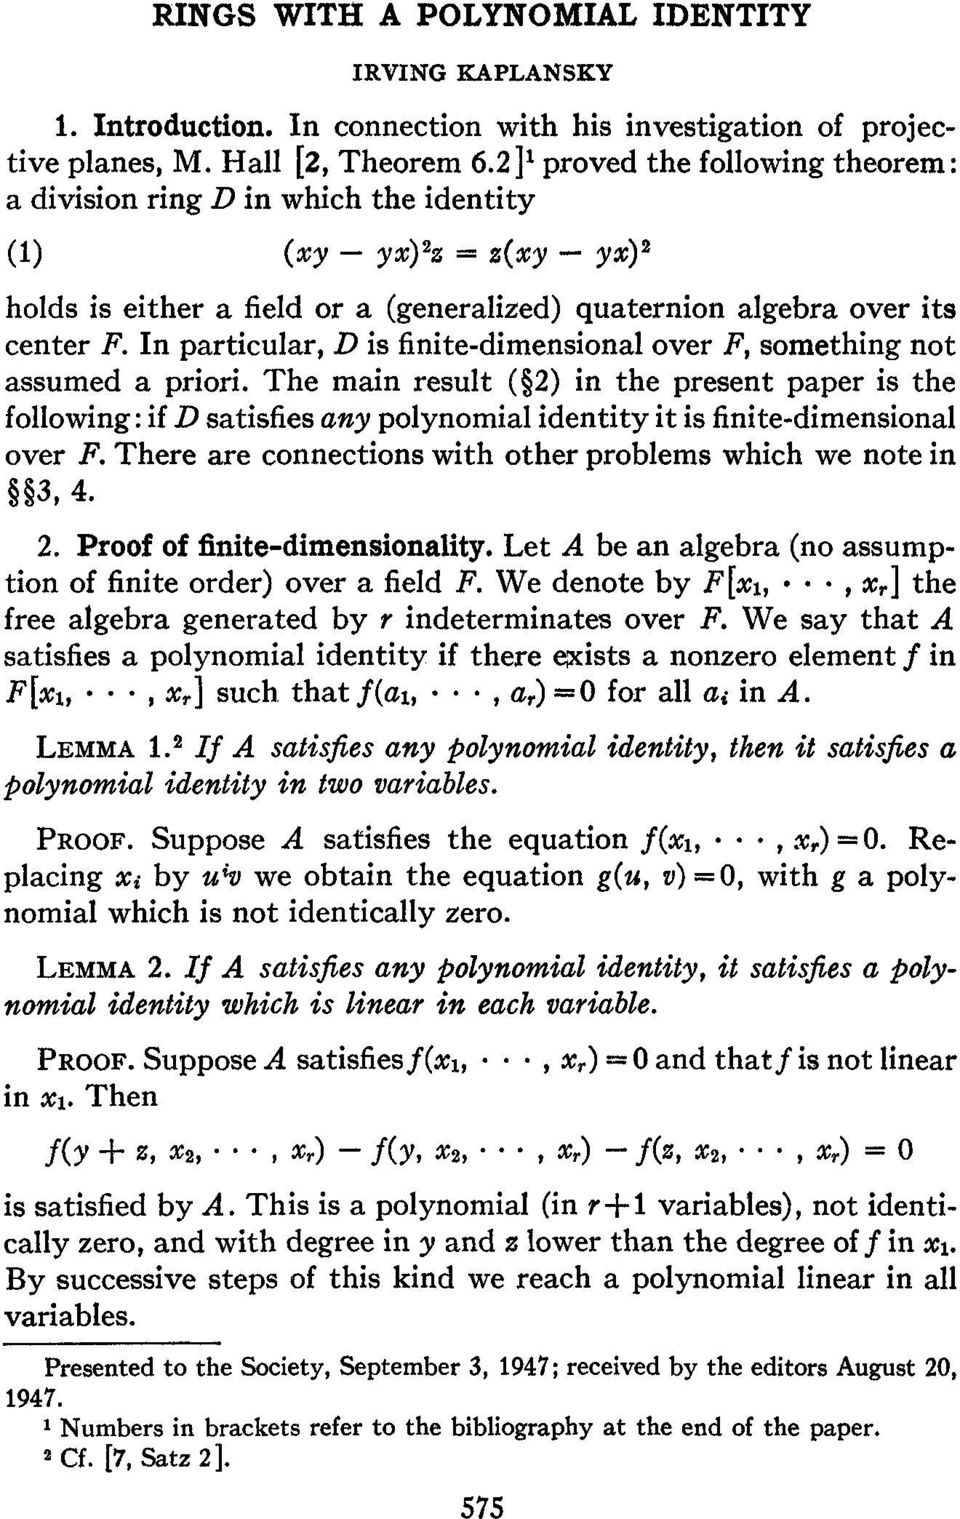 In particular, D is finite-dimensional over F, something not assumed a priori.